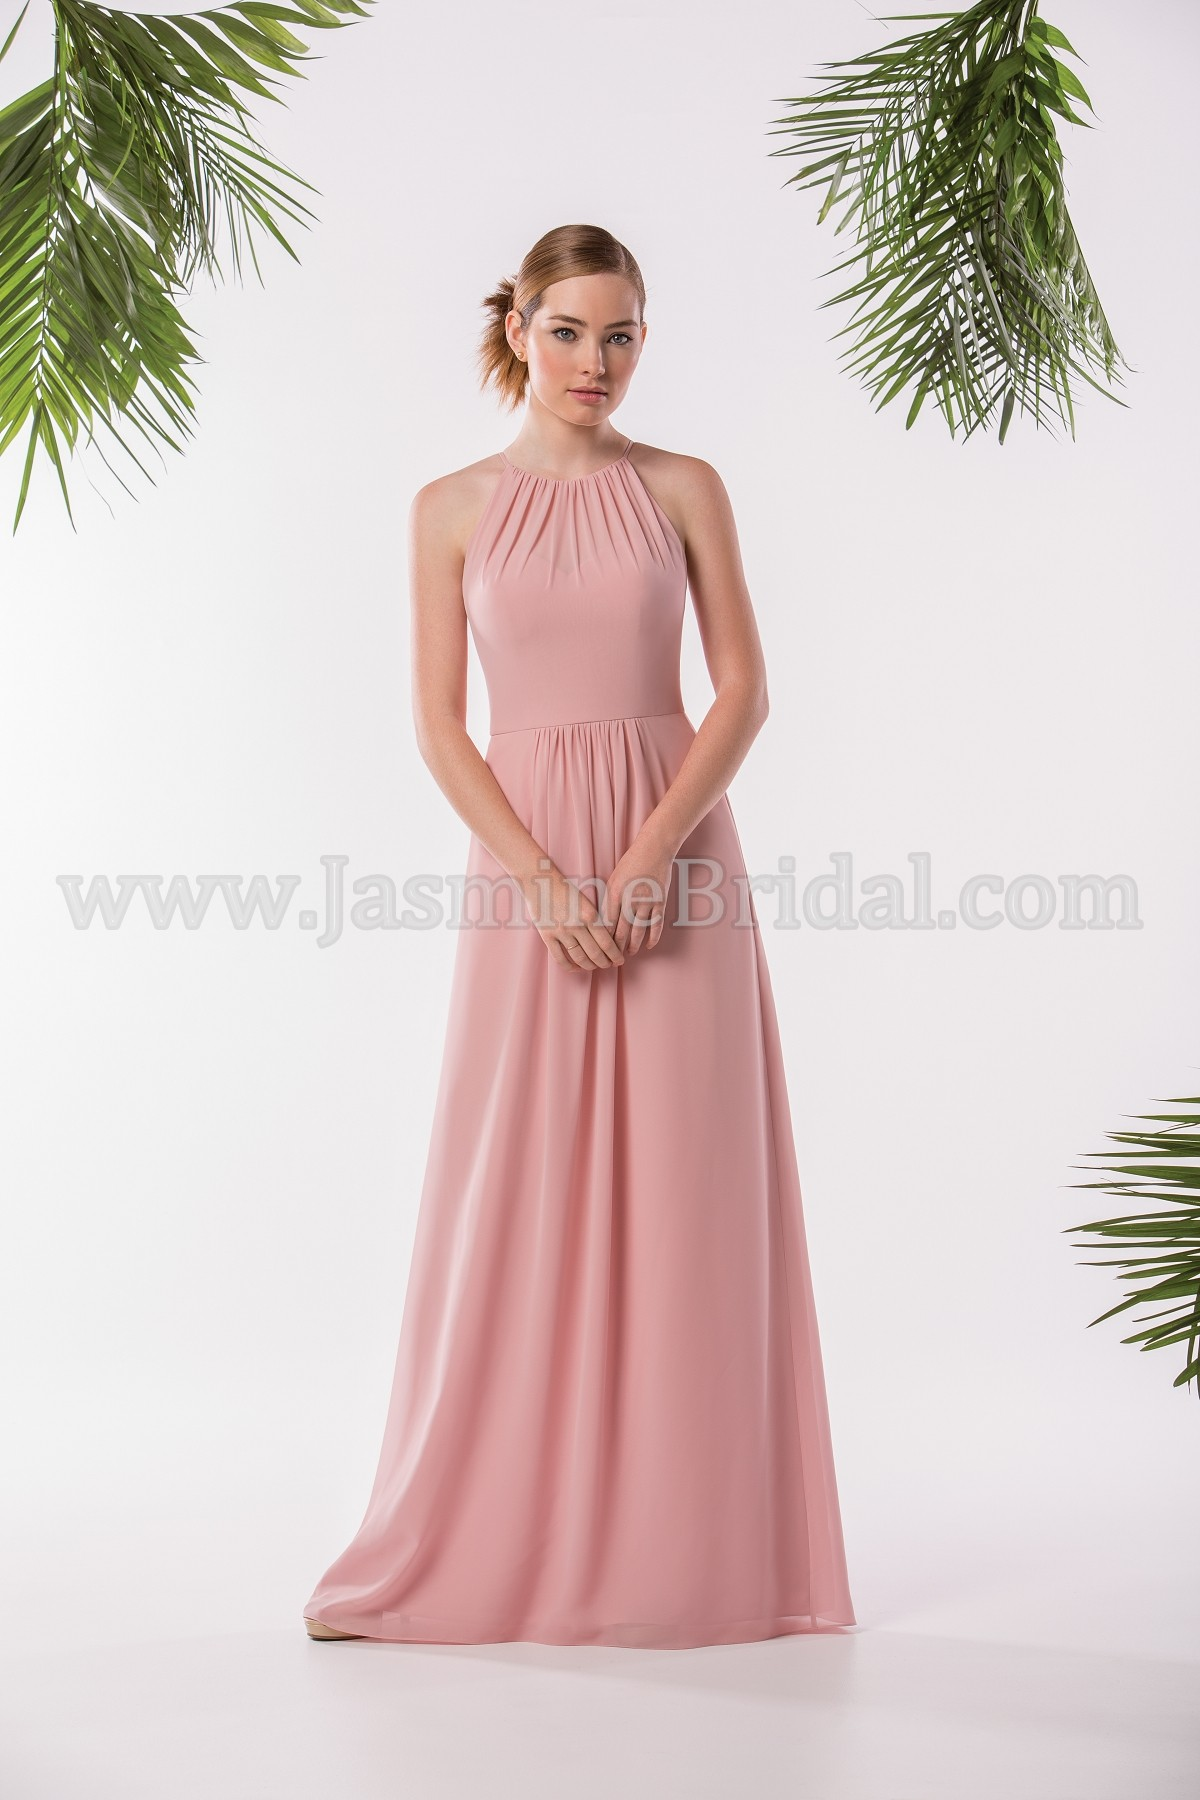 db0b1b0b59b3 P186005 Long Jewel Neckline Georgette Bridesmaid Dress